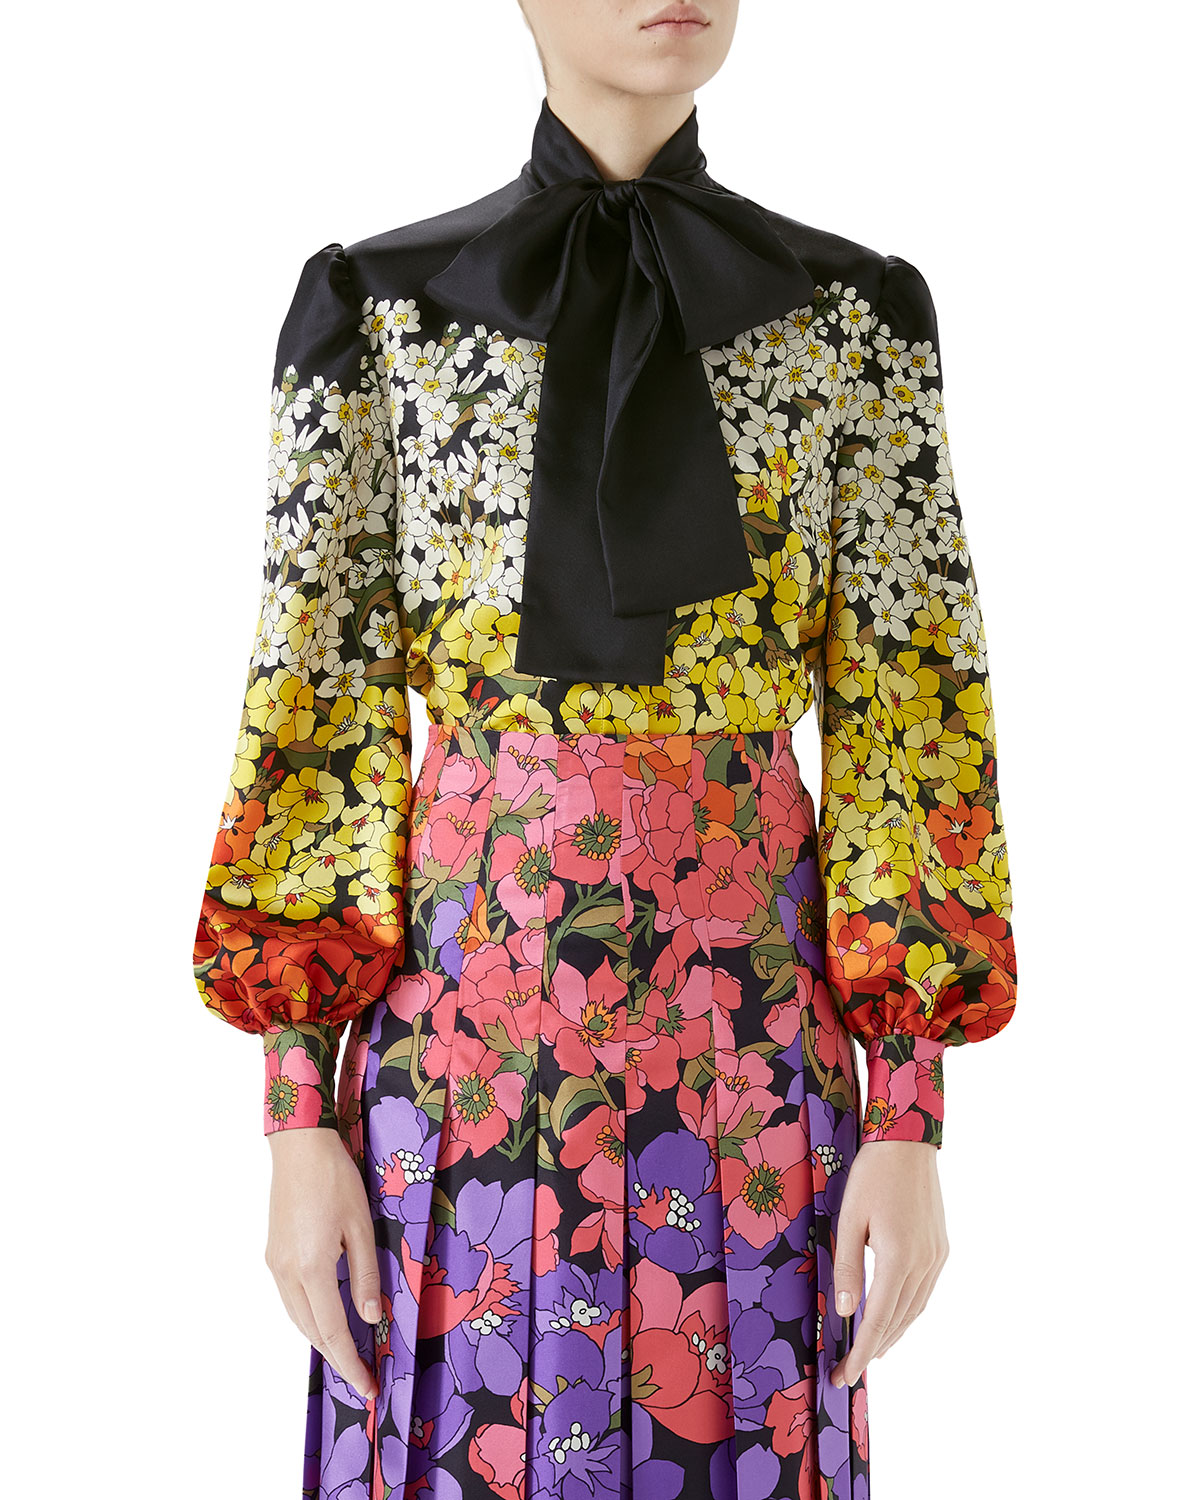 Long-Sleeve Floral DÉGradÉ Twill Blouse W/ Tie Neck in Black